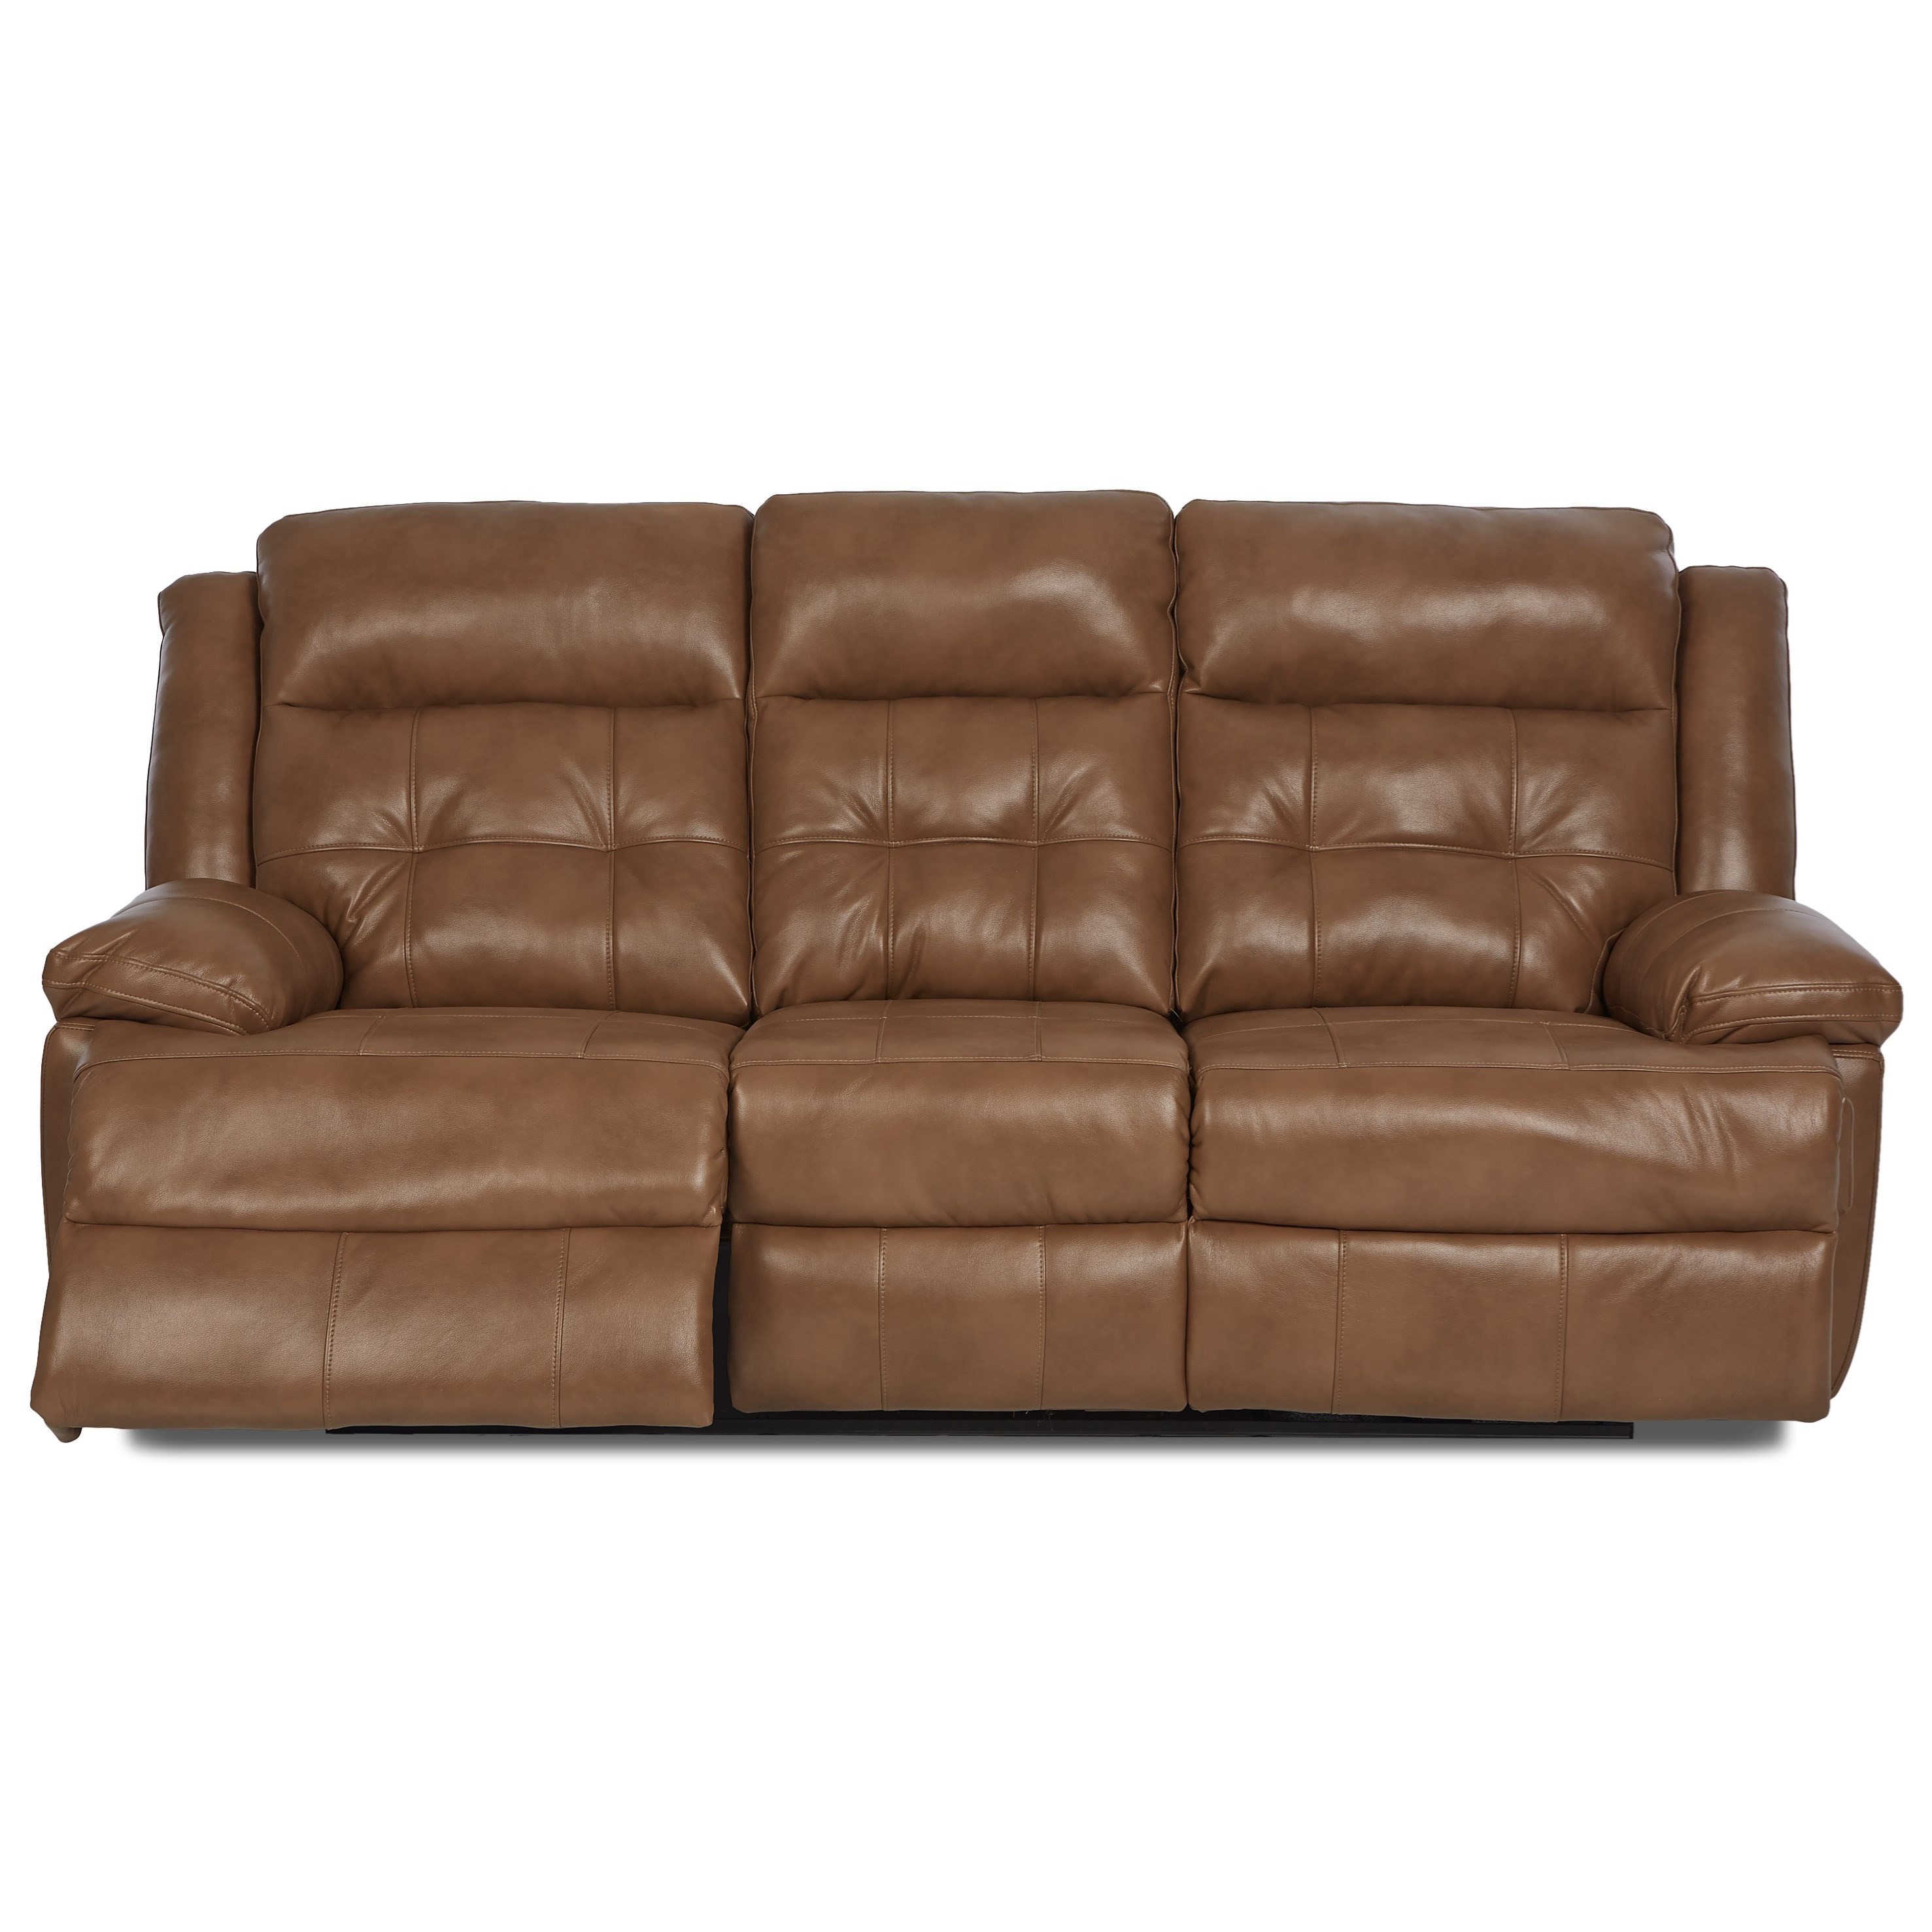 Klaussner Zeus Transitional Power Reclining Sofa With